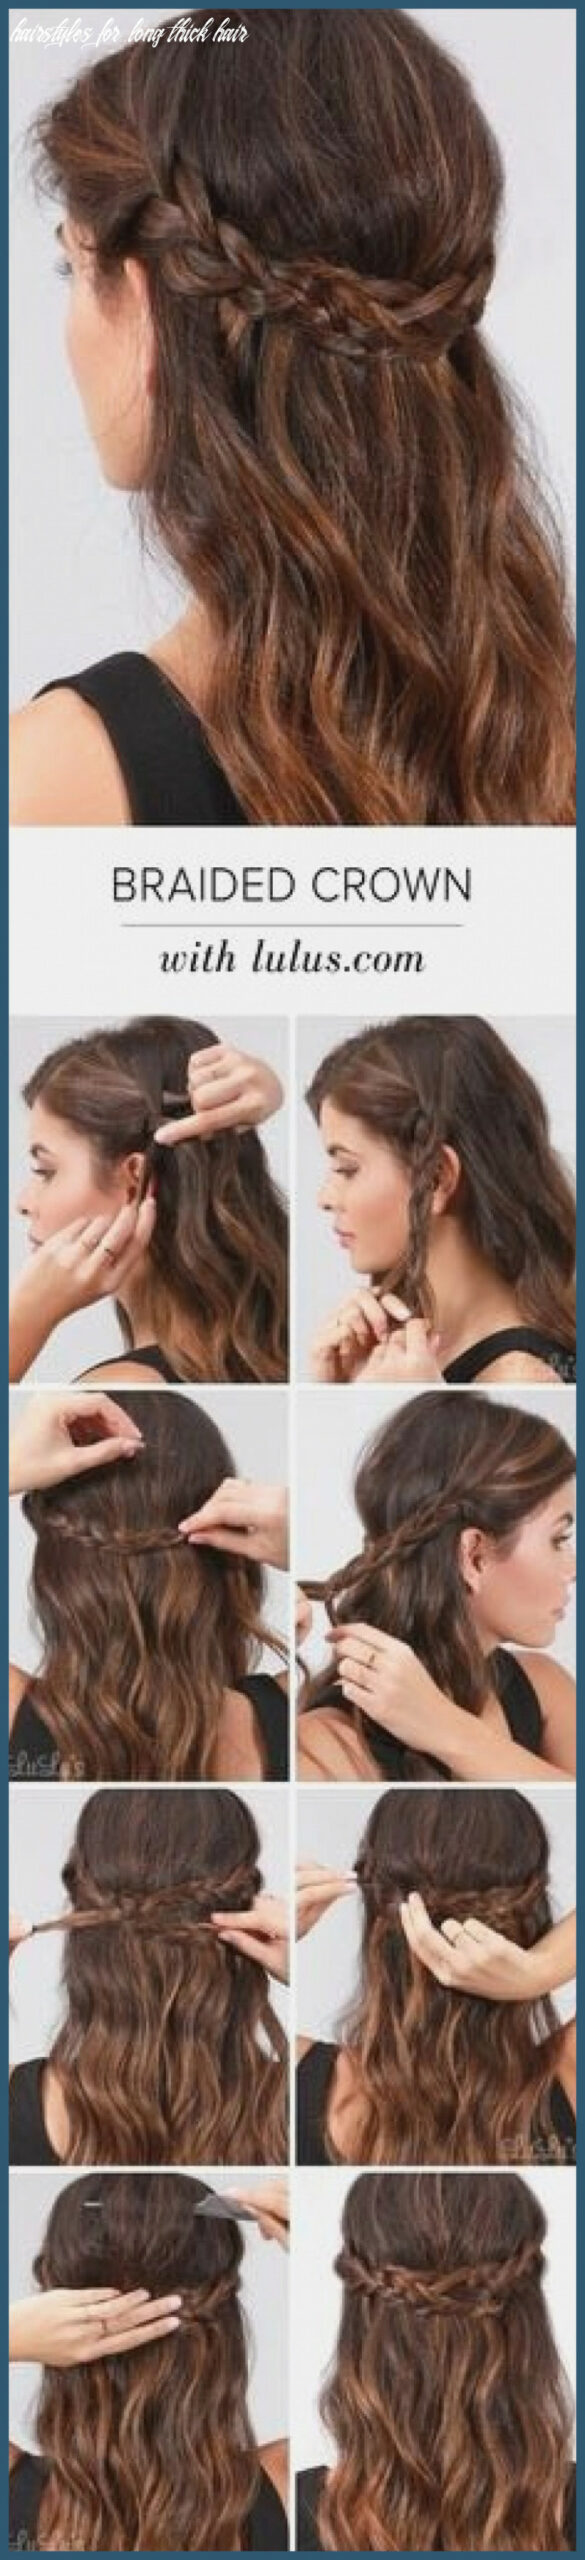 Easy wedding hairstyles for long thick hair لم يسبق له مثيل الصور